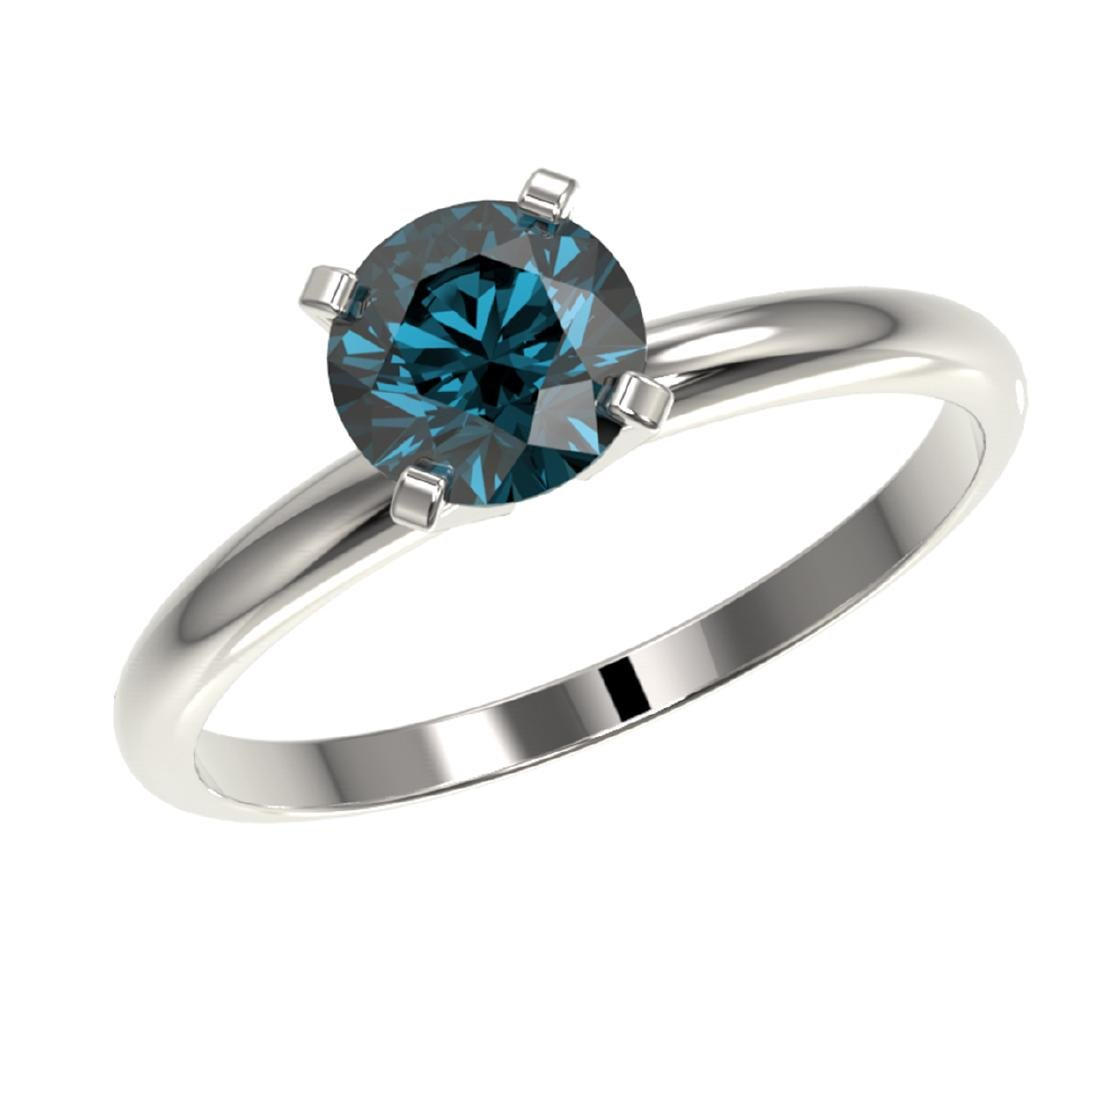 1 CTW Intense Blue SI Diamond Solitaire Ring Gold - - 2